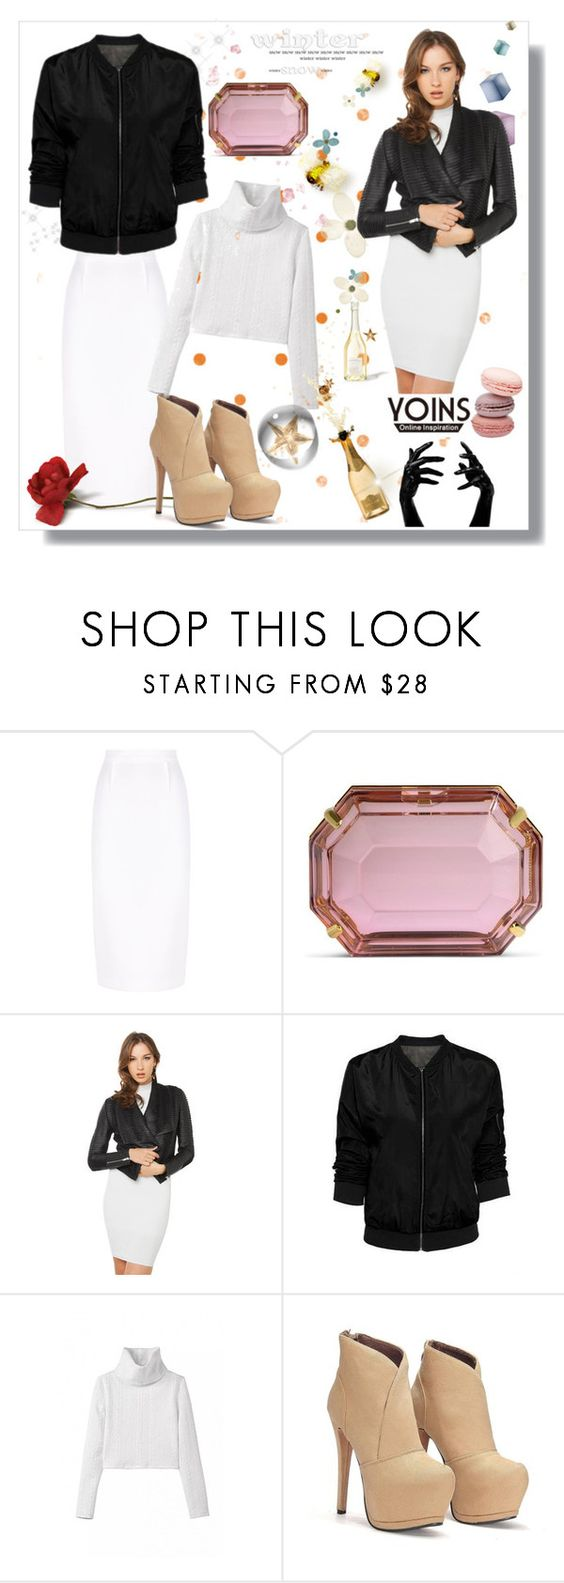 """""""yoins"""" by bellamonica ❤ liked on Polyvore featuring Roland Mouret, Charlotte Olympia, Akira Black Label, women's clothing, women, female, woman, misses, juniors and yoins"""